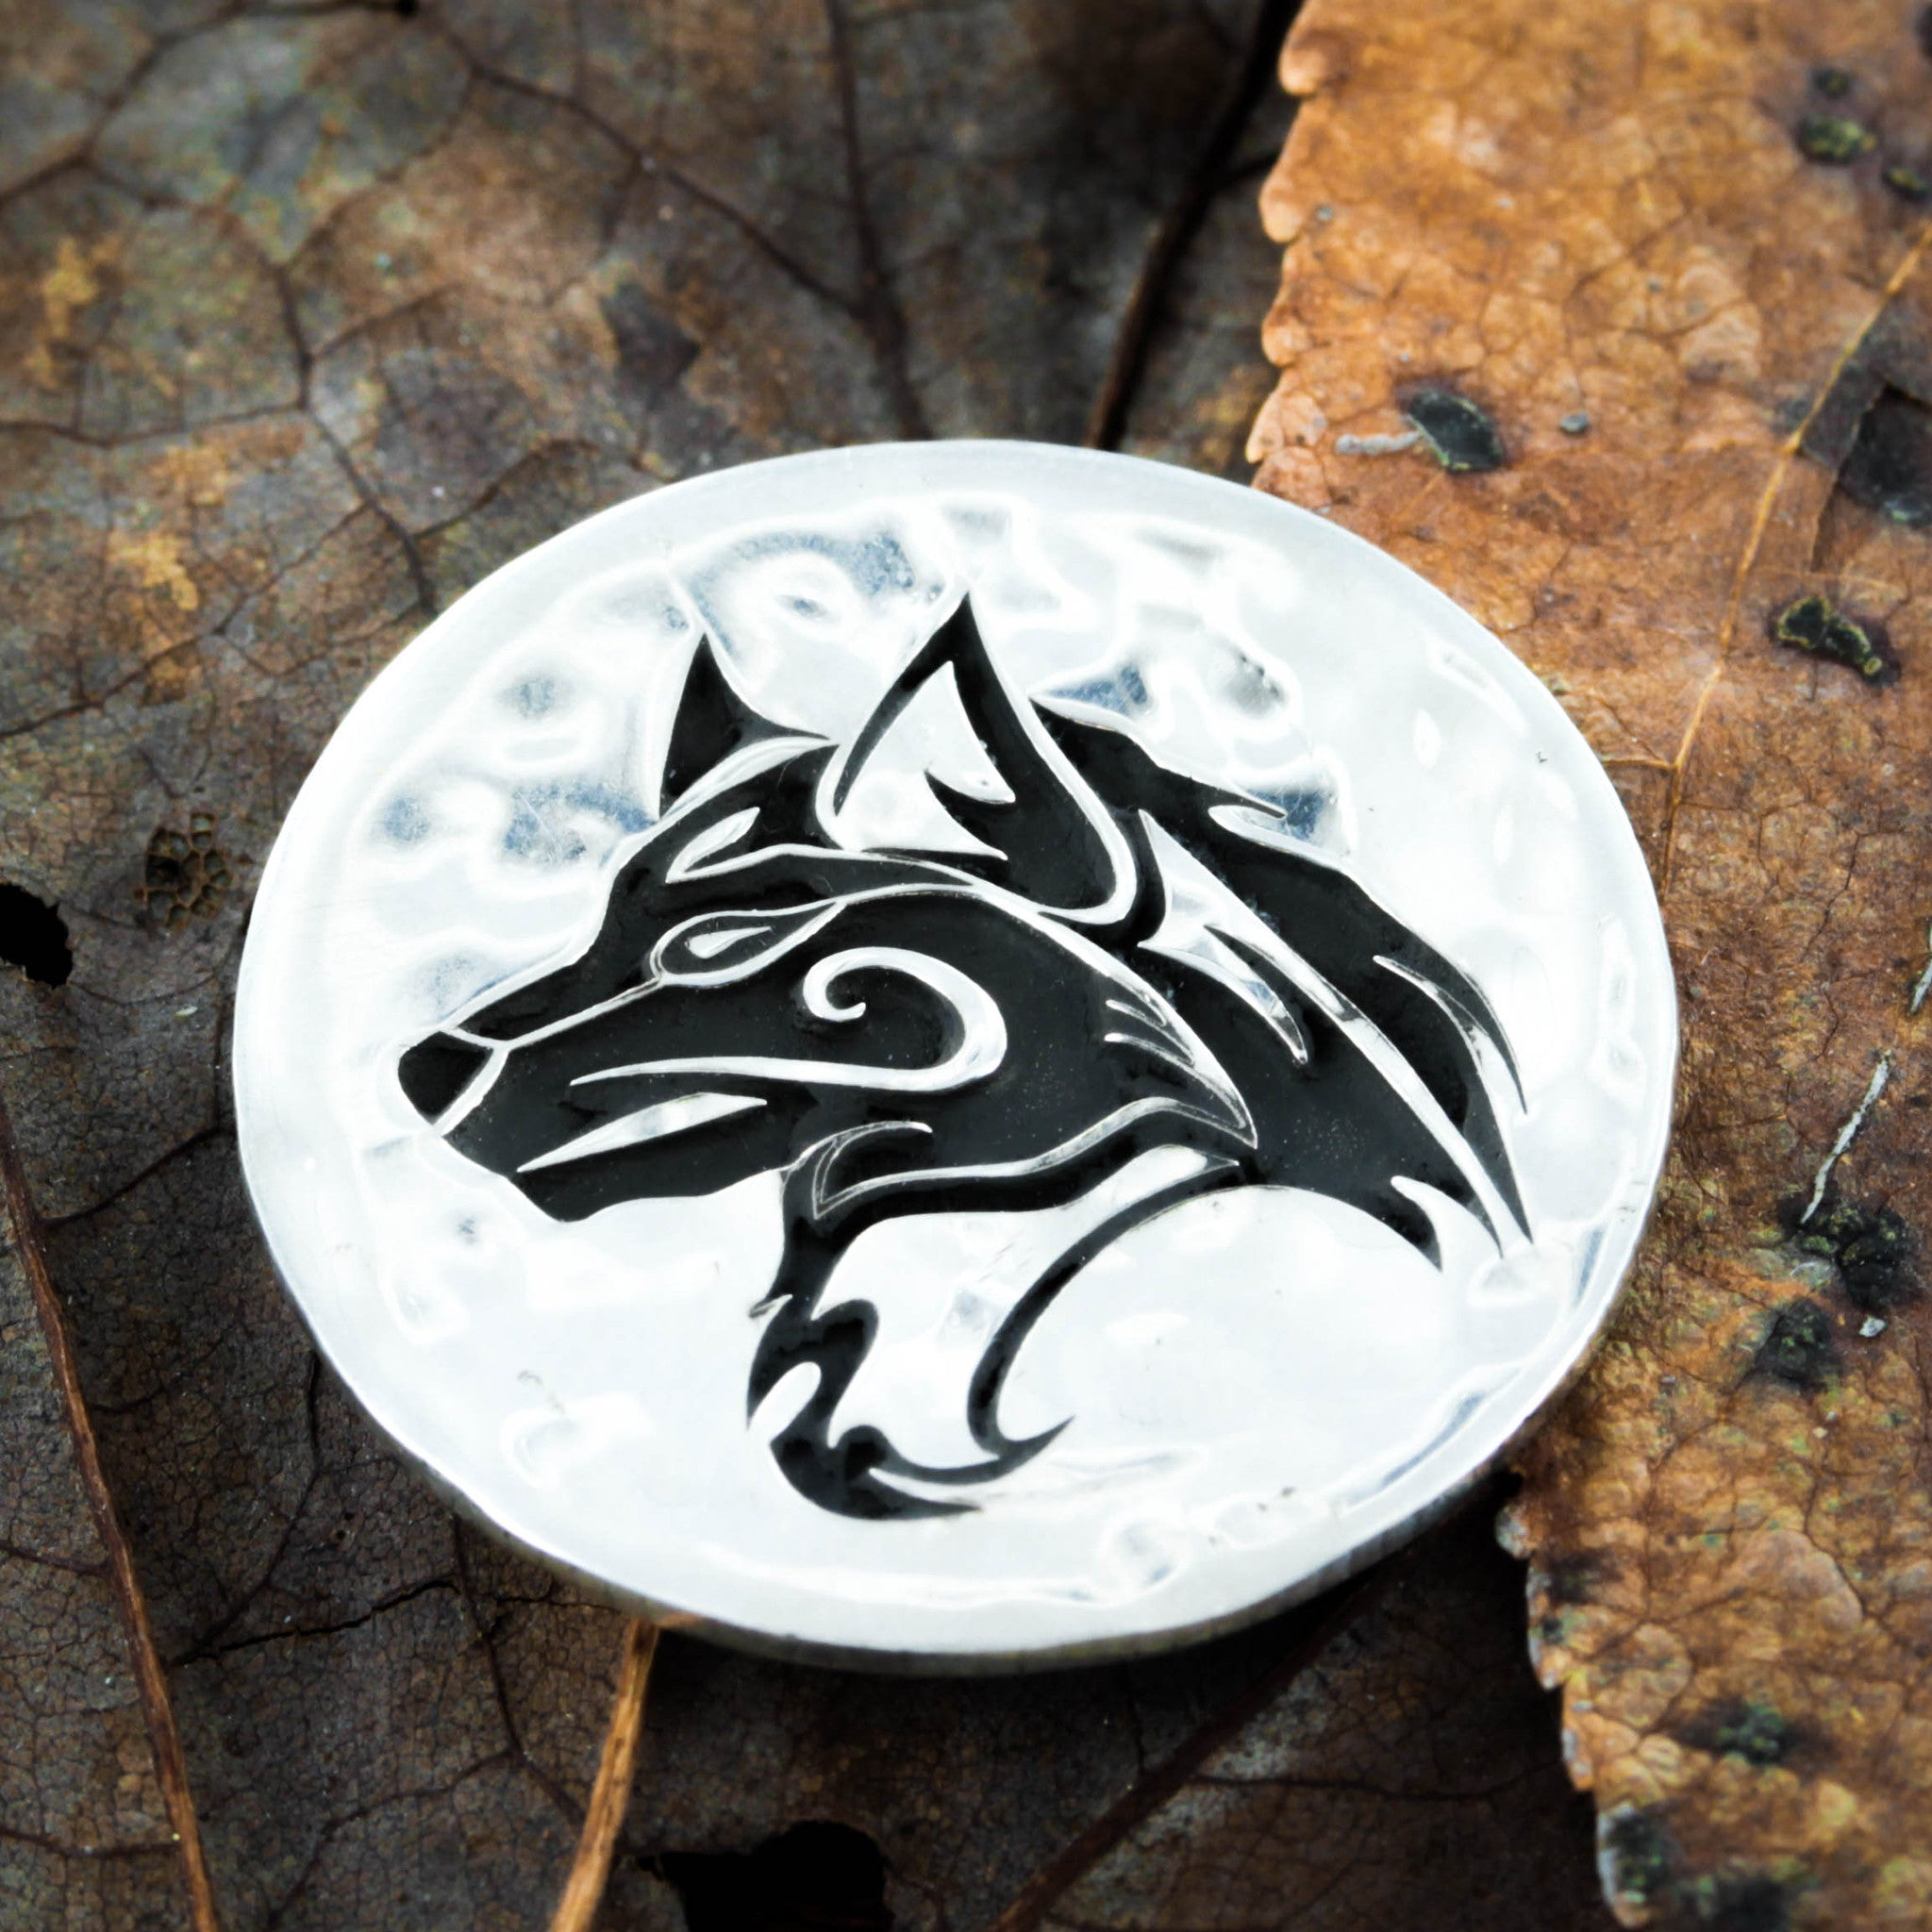 of thrones sigil leather p fullxfull wolf head game direwolf bumbleberry il stark pendant by necklace gift jewelry handmade